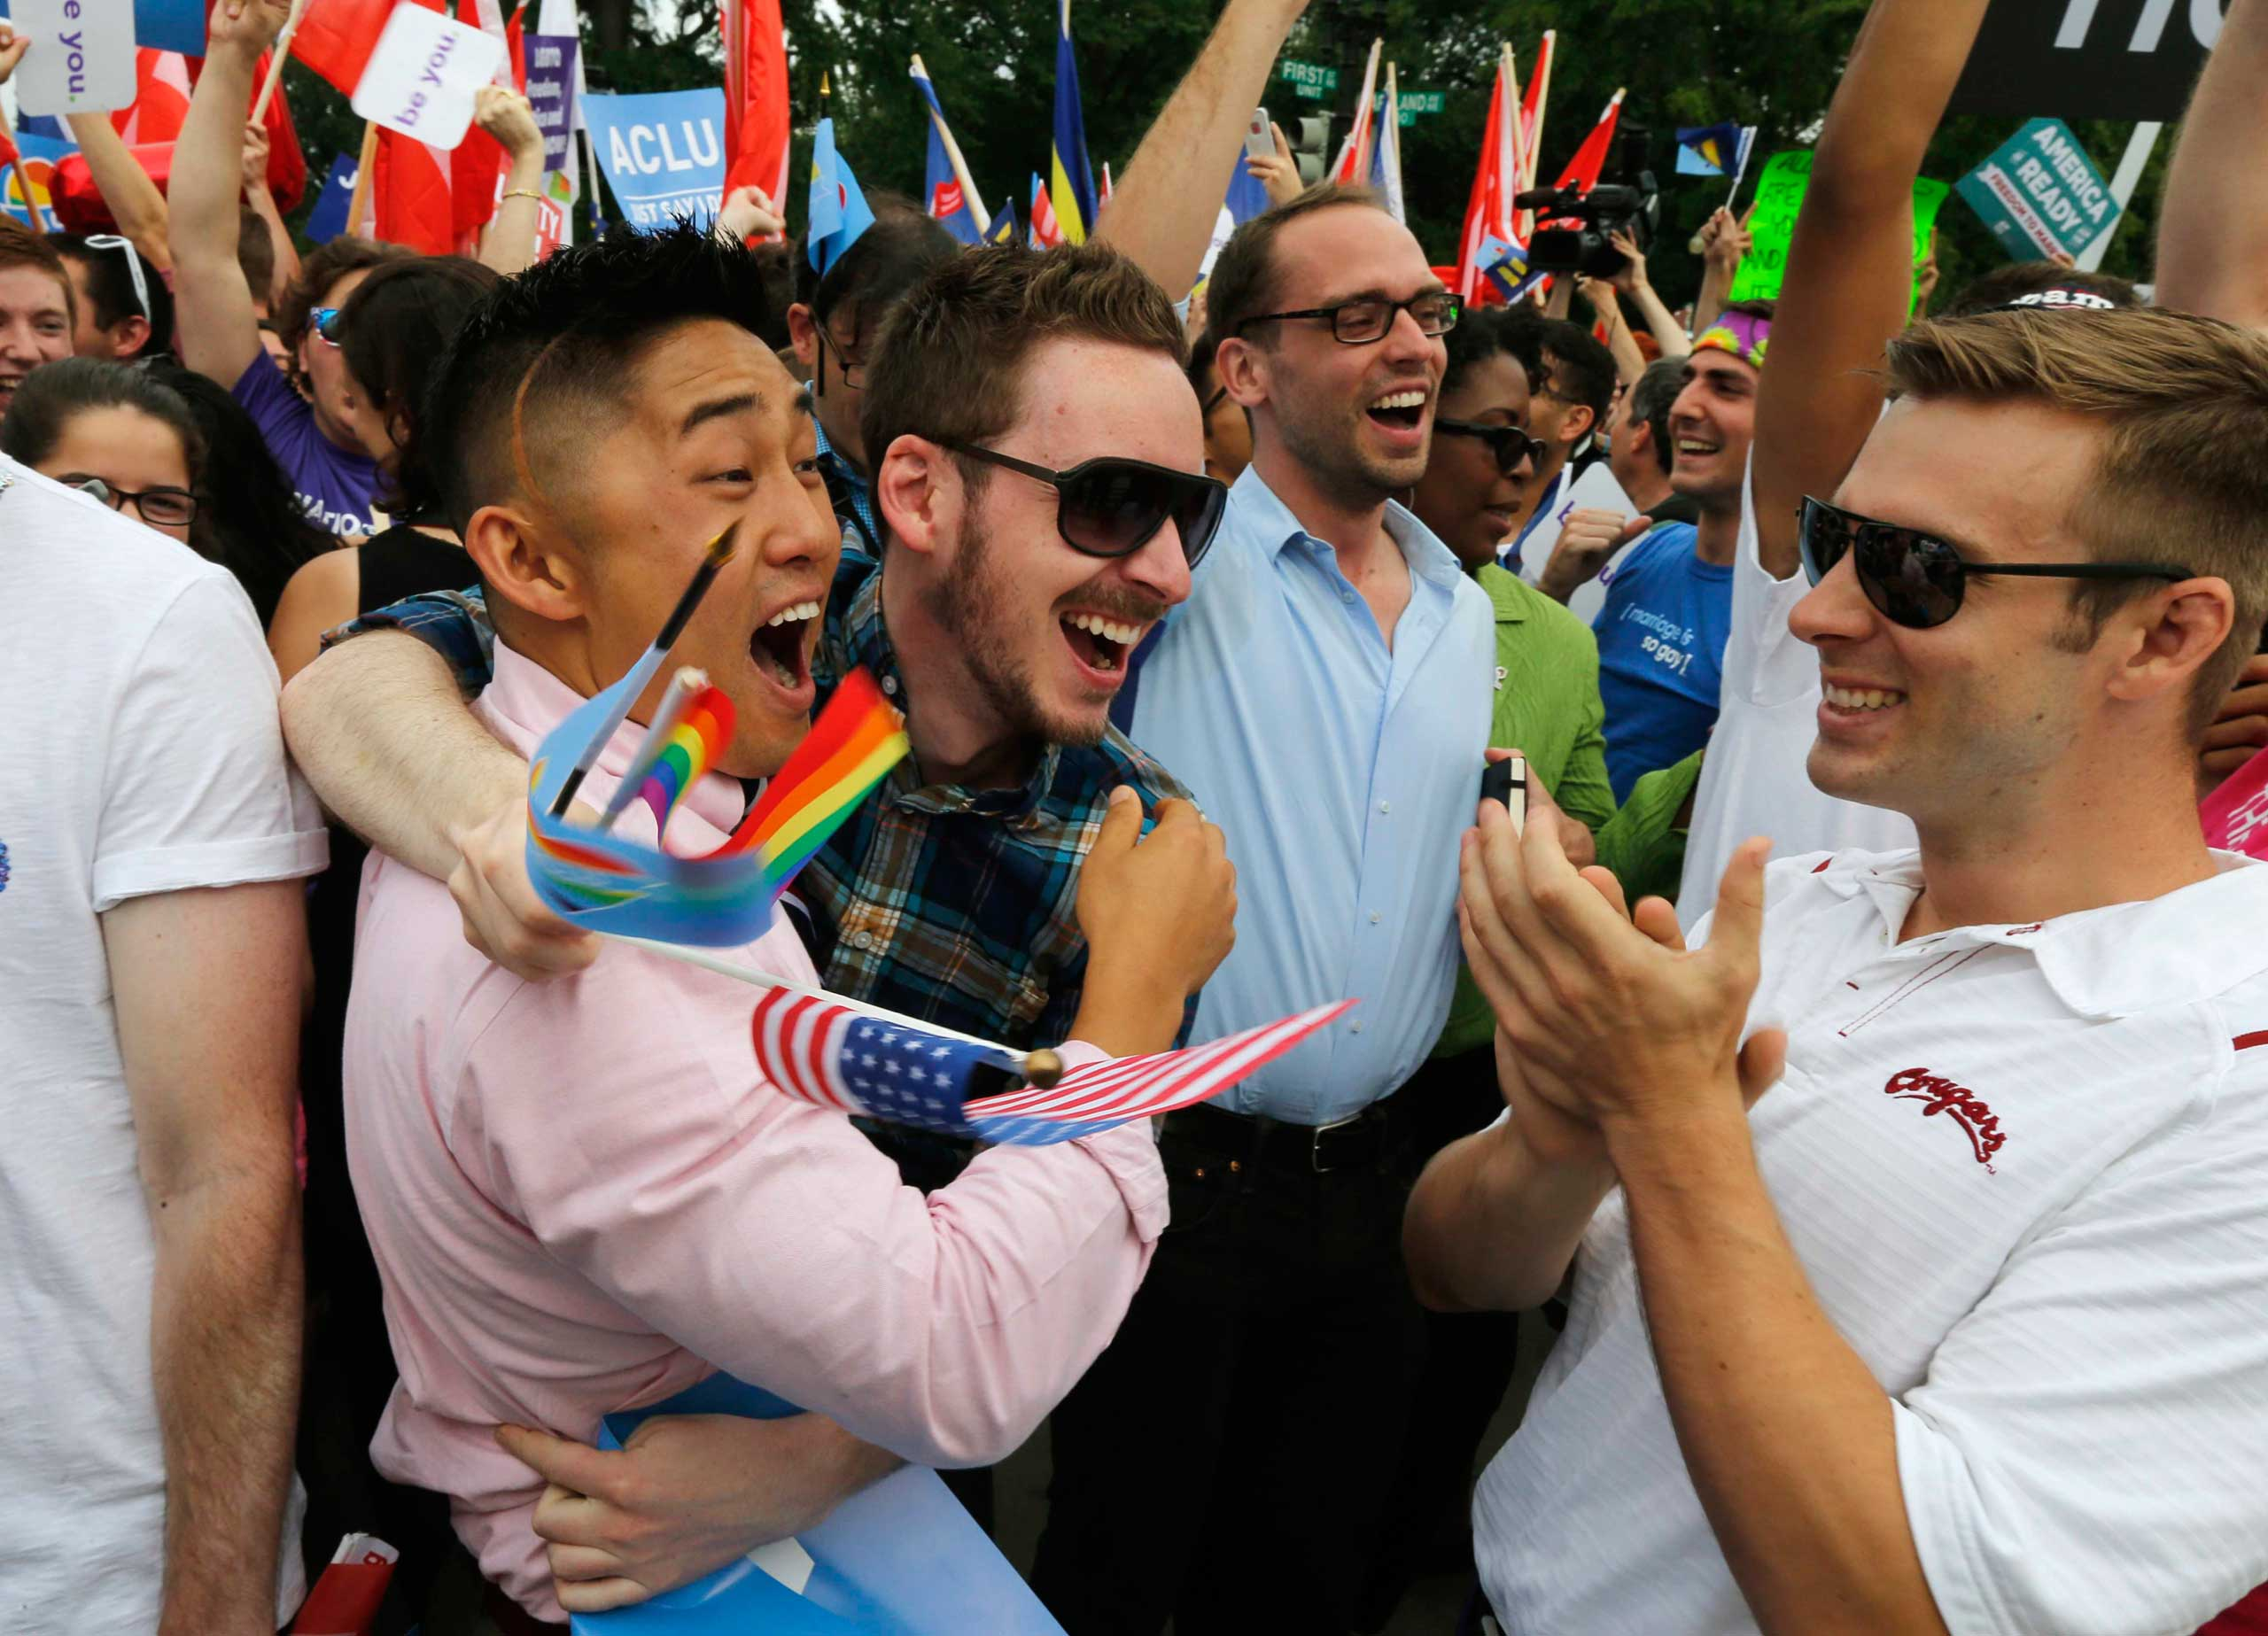 Supporters of same-sex marriage celebrate outside of the Supreme Court in Washington, on June 26, 2015.